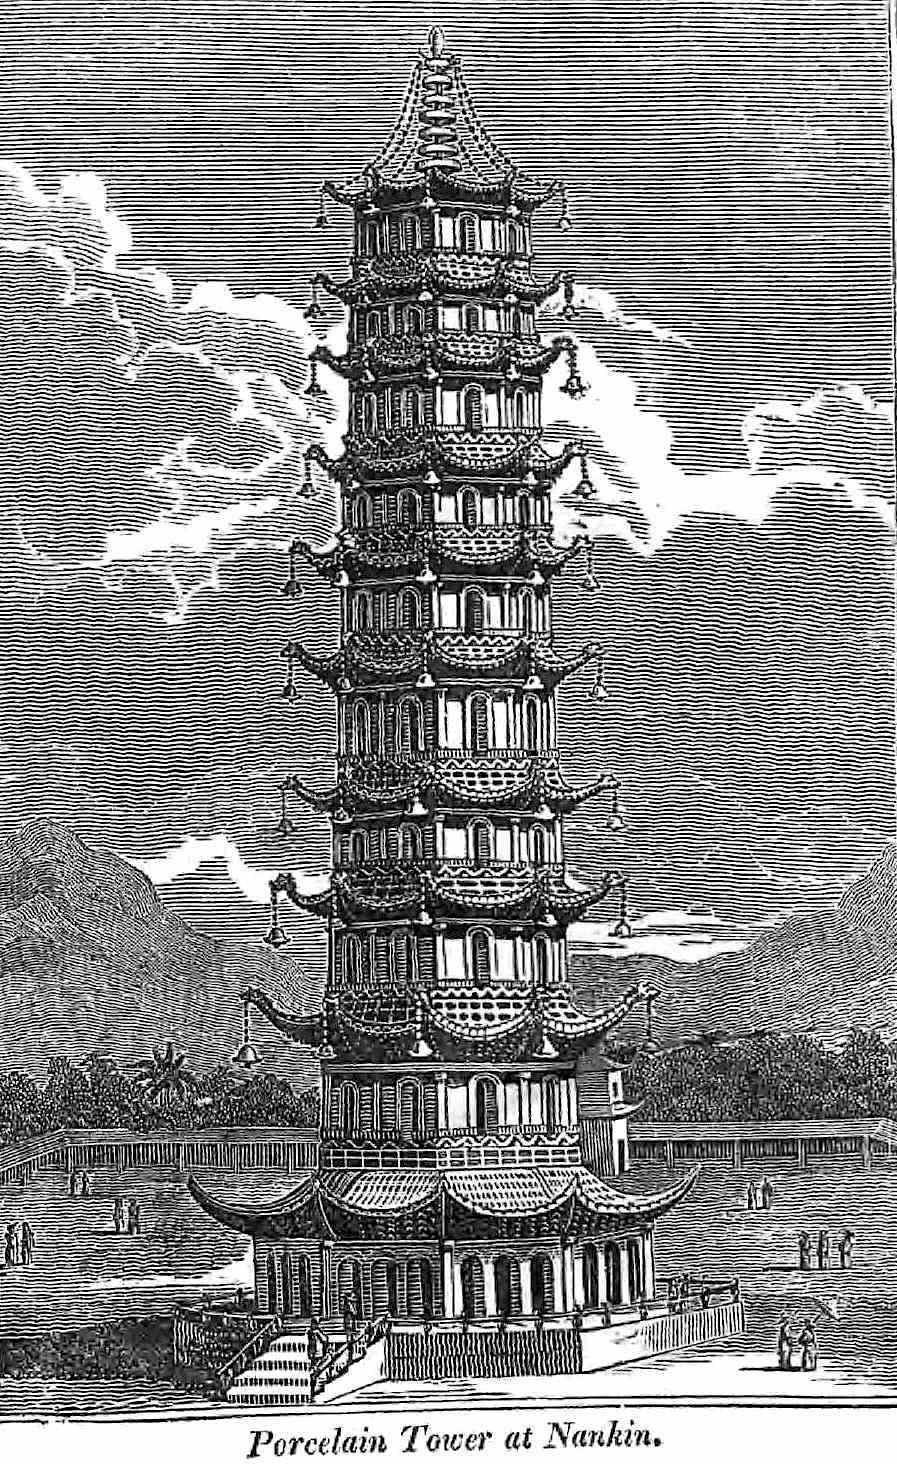 the 1500s white Porcelain Tower of Nanjing from an 1822 book, an illustration